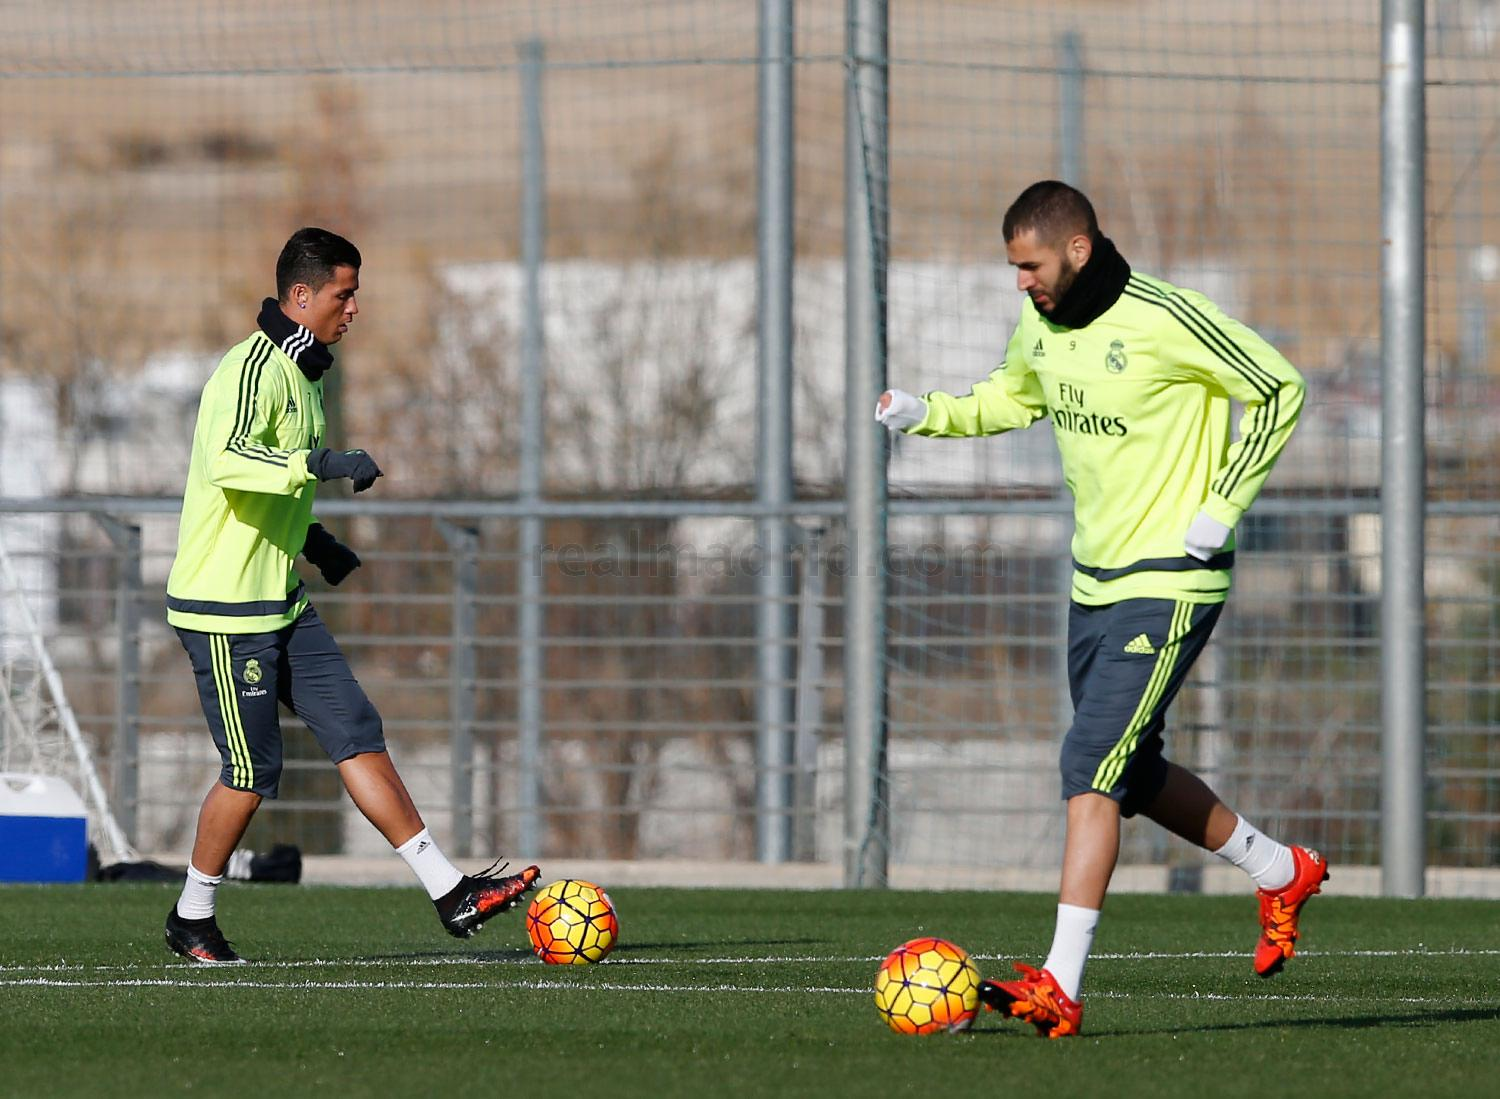 Real Madrid - Entrenamiento del Real Madrid - 27-12-2015